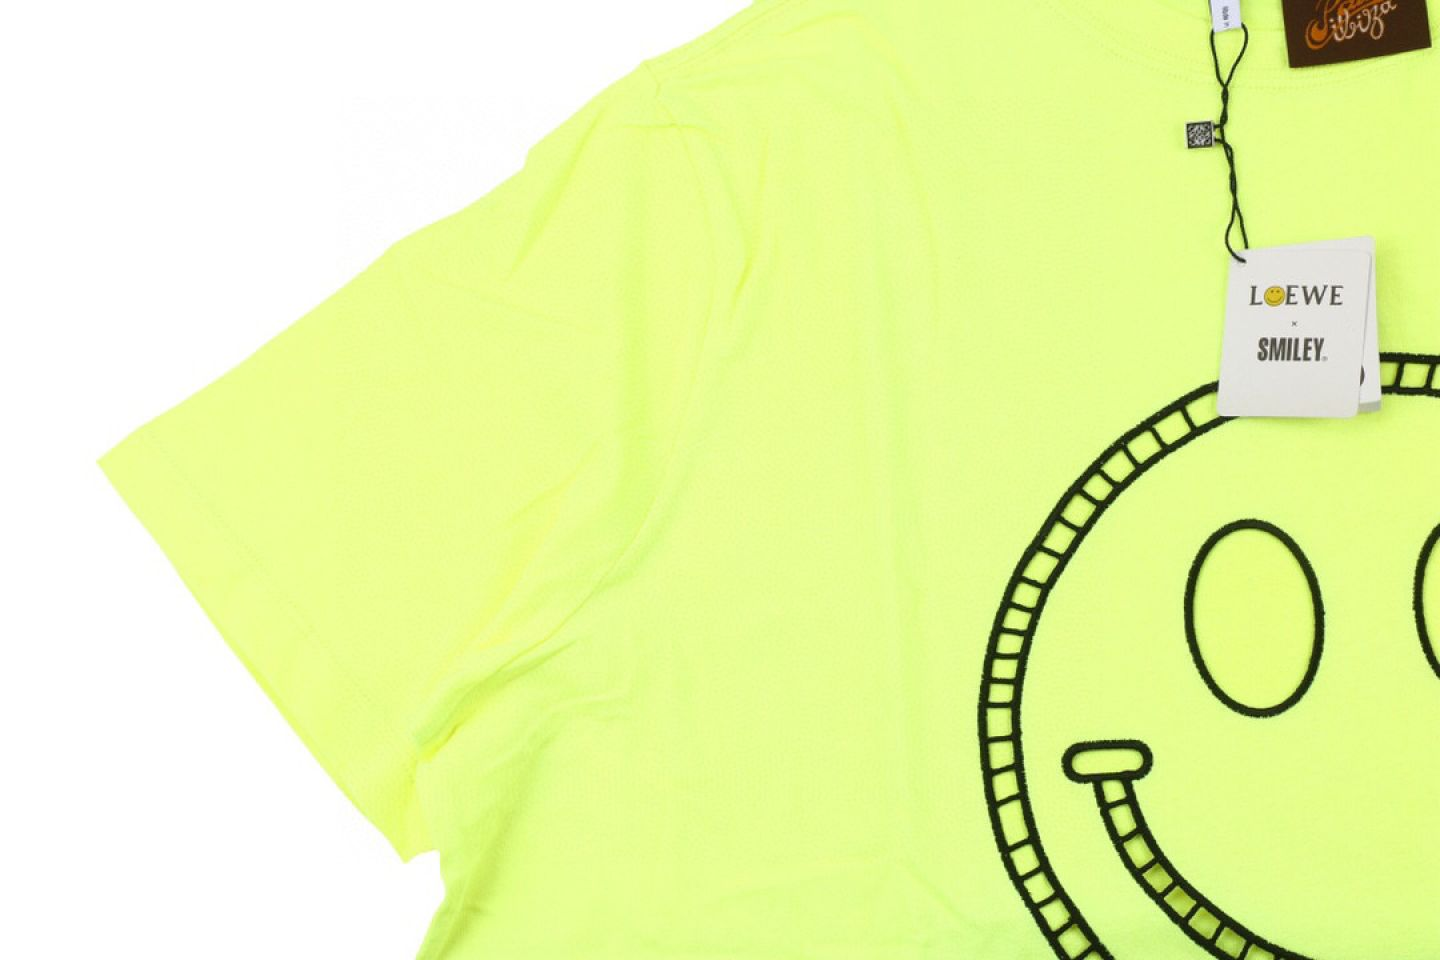 Shirt LOEWE x SMILEY 20ss fluorescent smiley short sleeve T-shirt yellow 2 loewe_x_smiley_20ss_fluorescent_smiley_short_sleeve_t_shirt_yellow_2